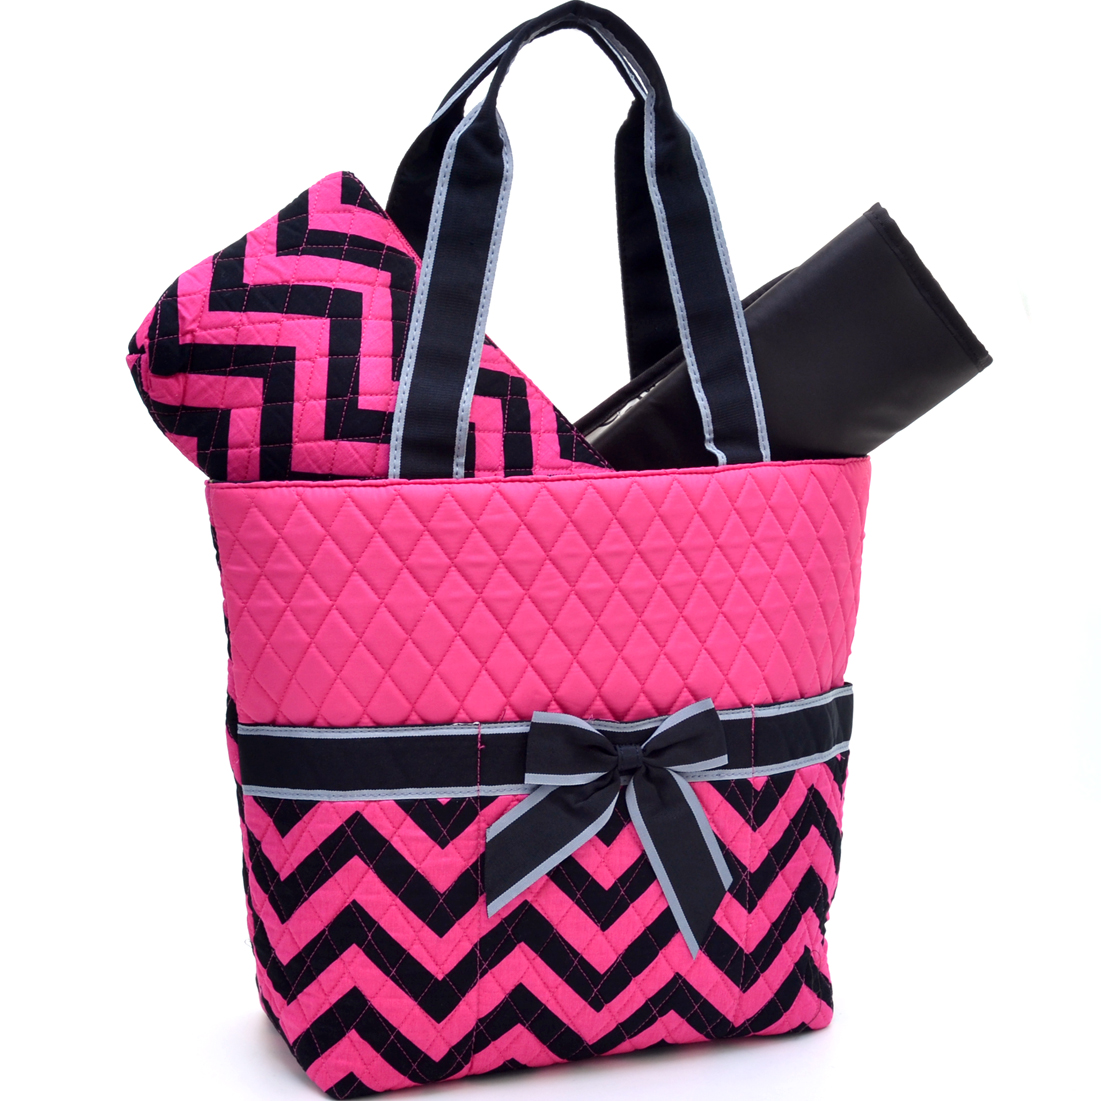 Rosen Blue™ Chevron Print Diaper Bag 3-Piece Set